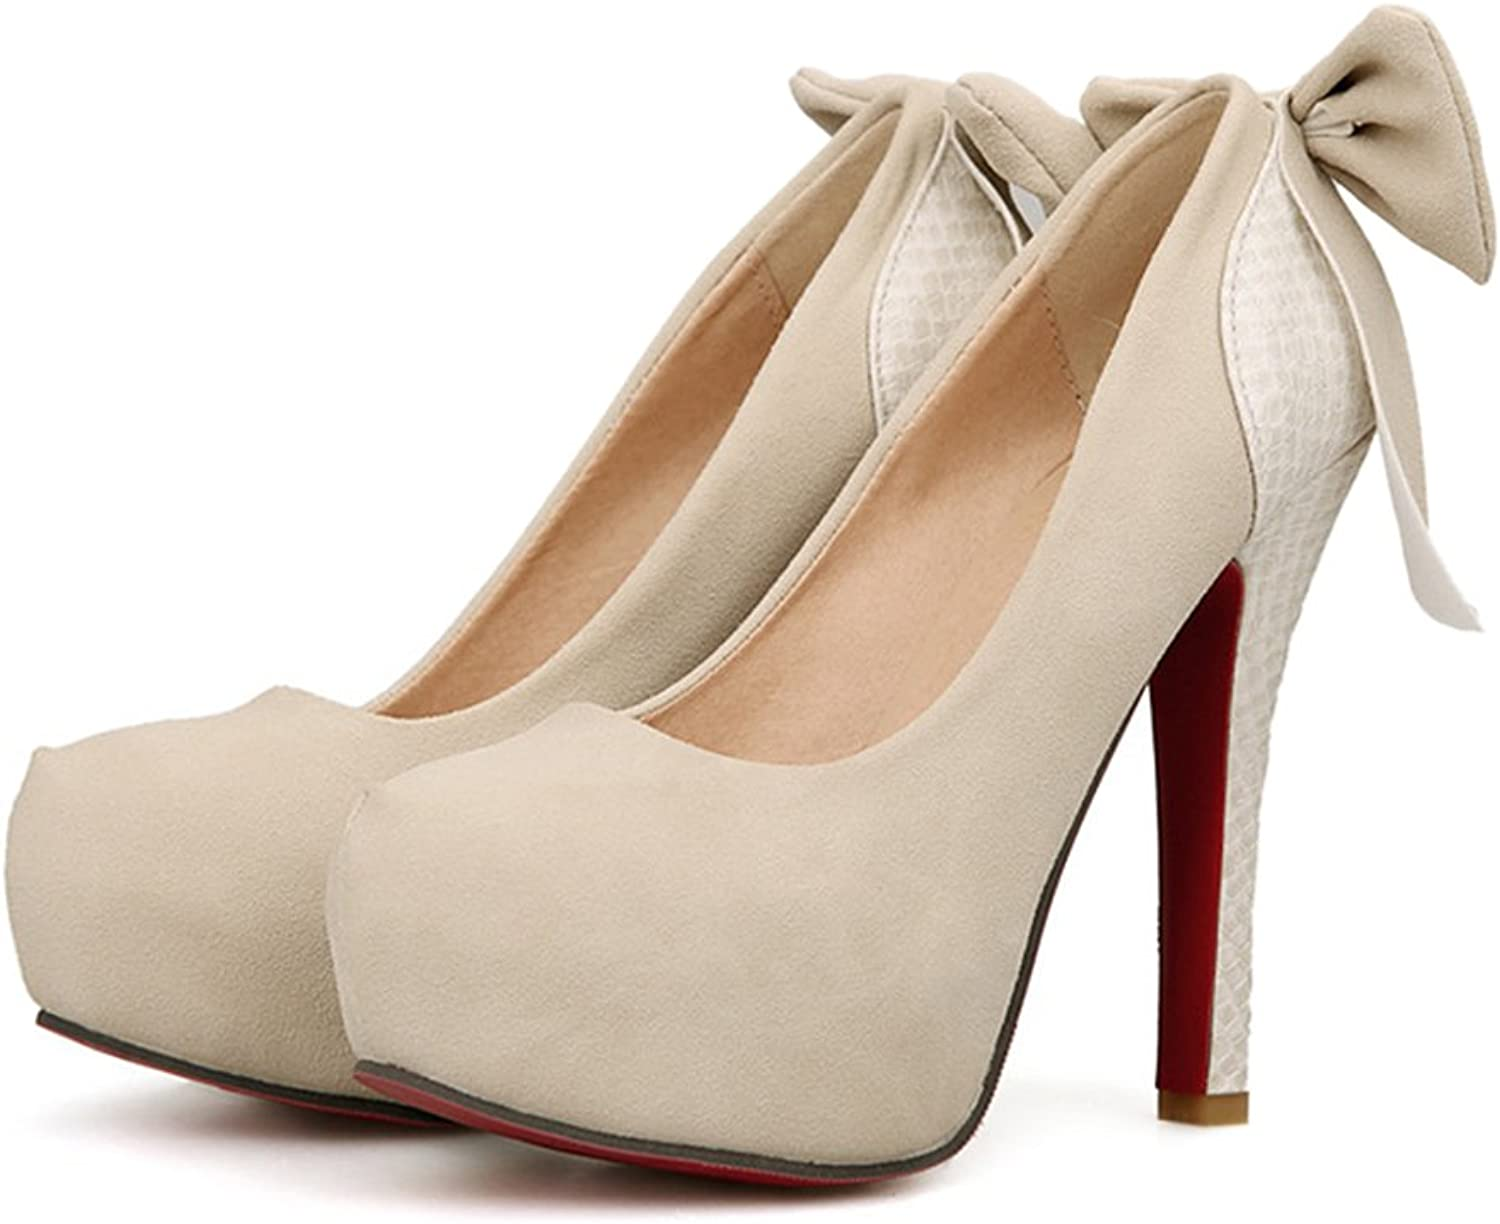 Plus Size High Heel Women Thin shoes Night Club Bowknot beige 39